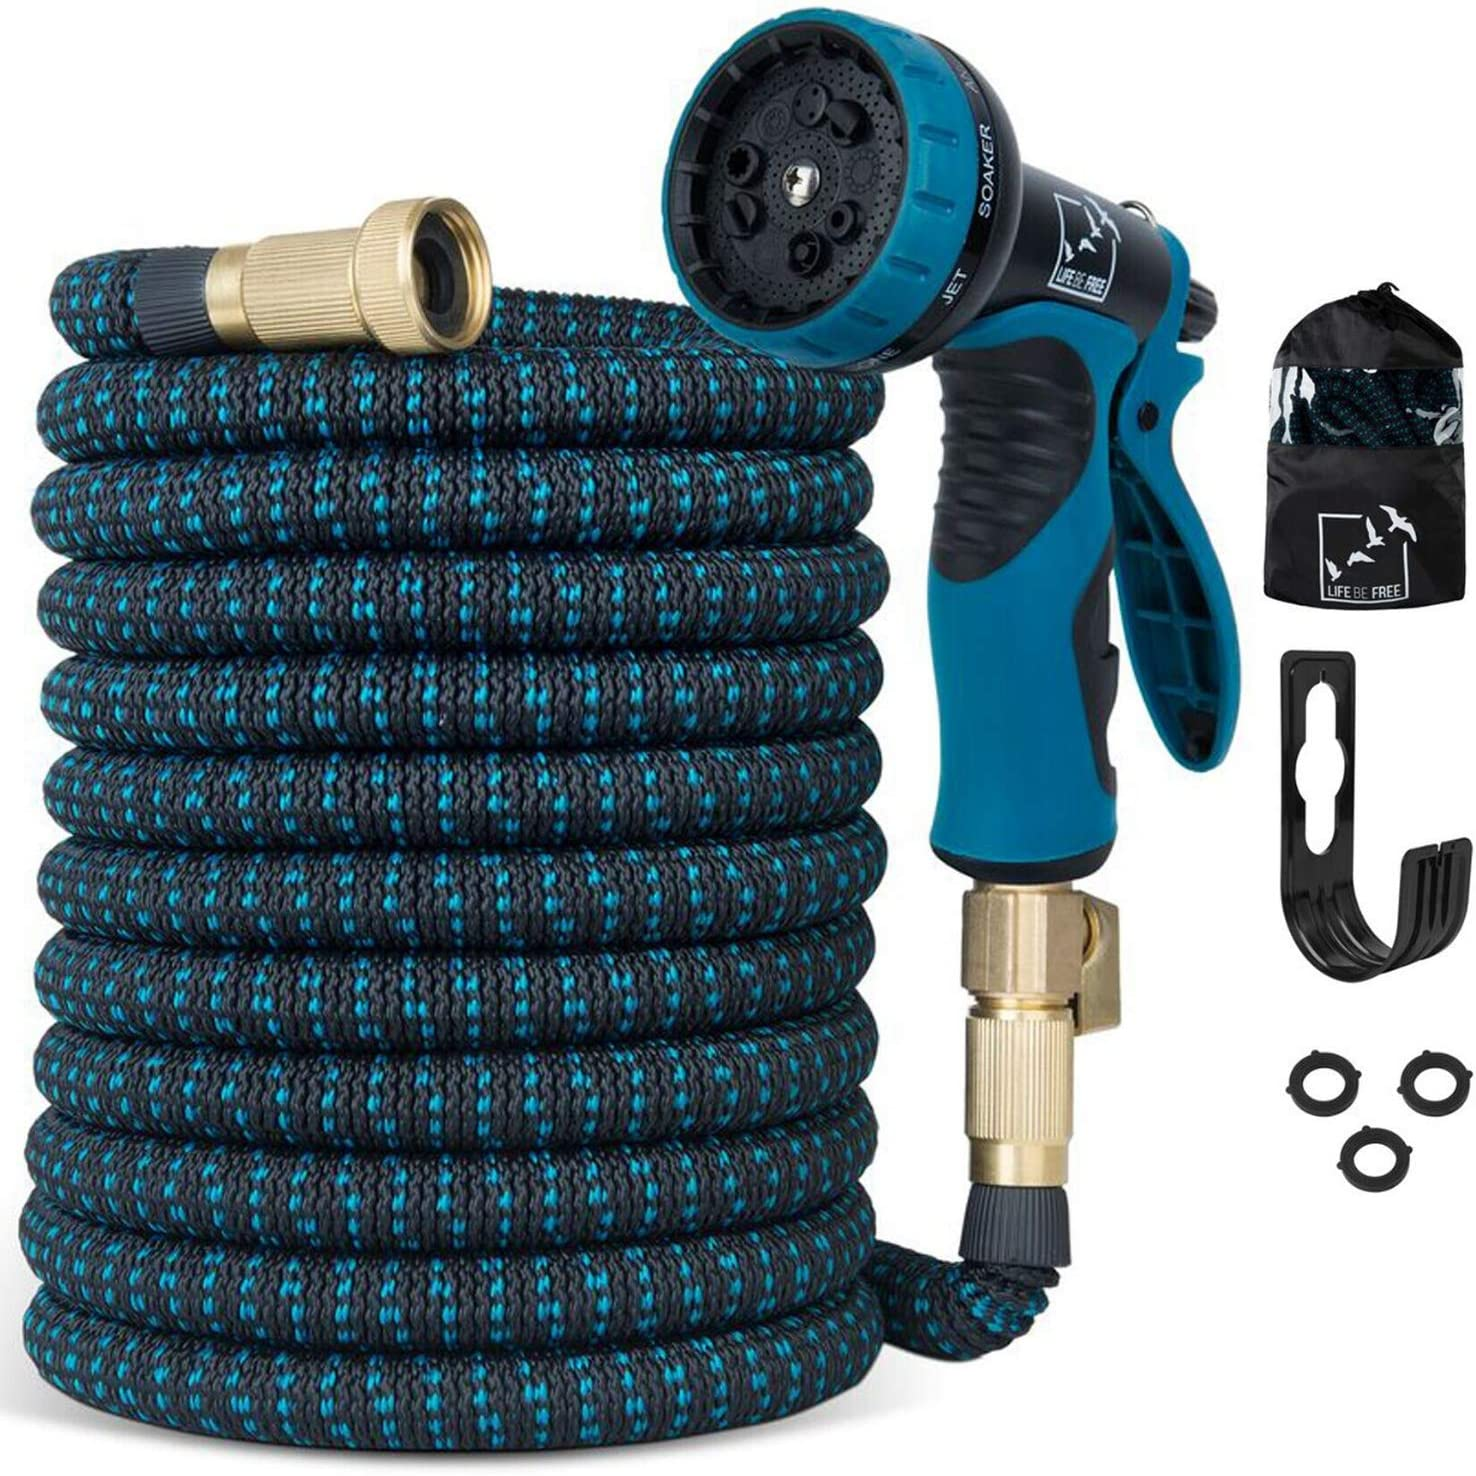 100 Ft Expandable Garden Hose, Upgraded Extra Strength No-Kink, Lightweight Durable Flexible Expanding Water Hose Pipe, 9 Function Spray Nozzle, 3/4 Solid Brass Connectors, Holder, Storage Bag 81sFTHsjeKL